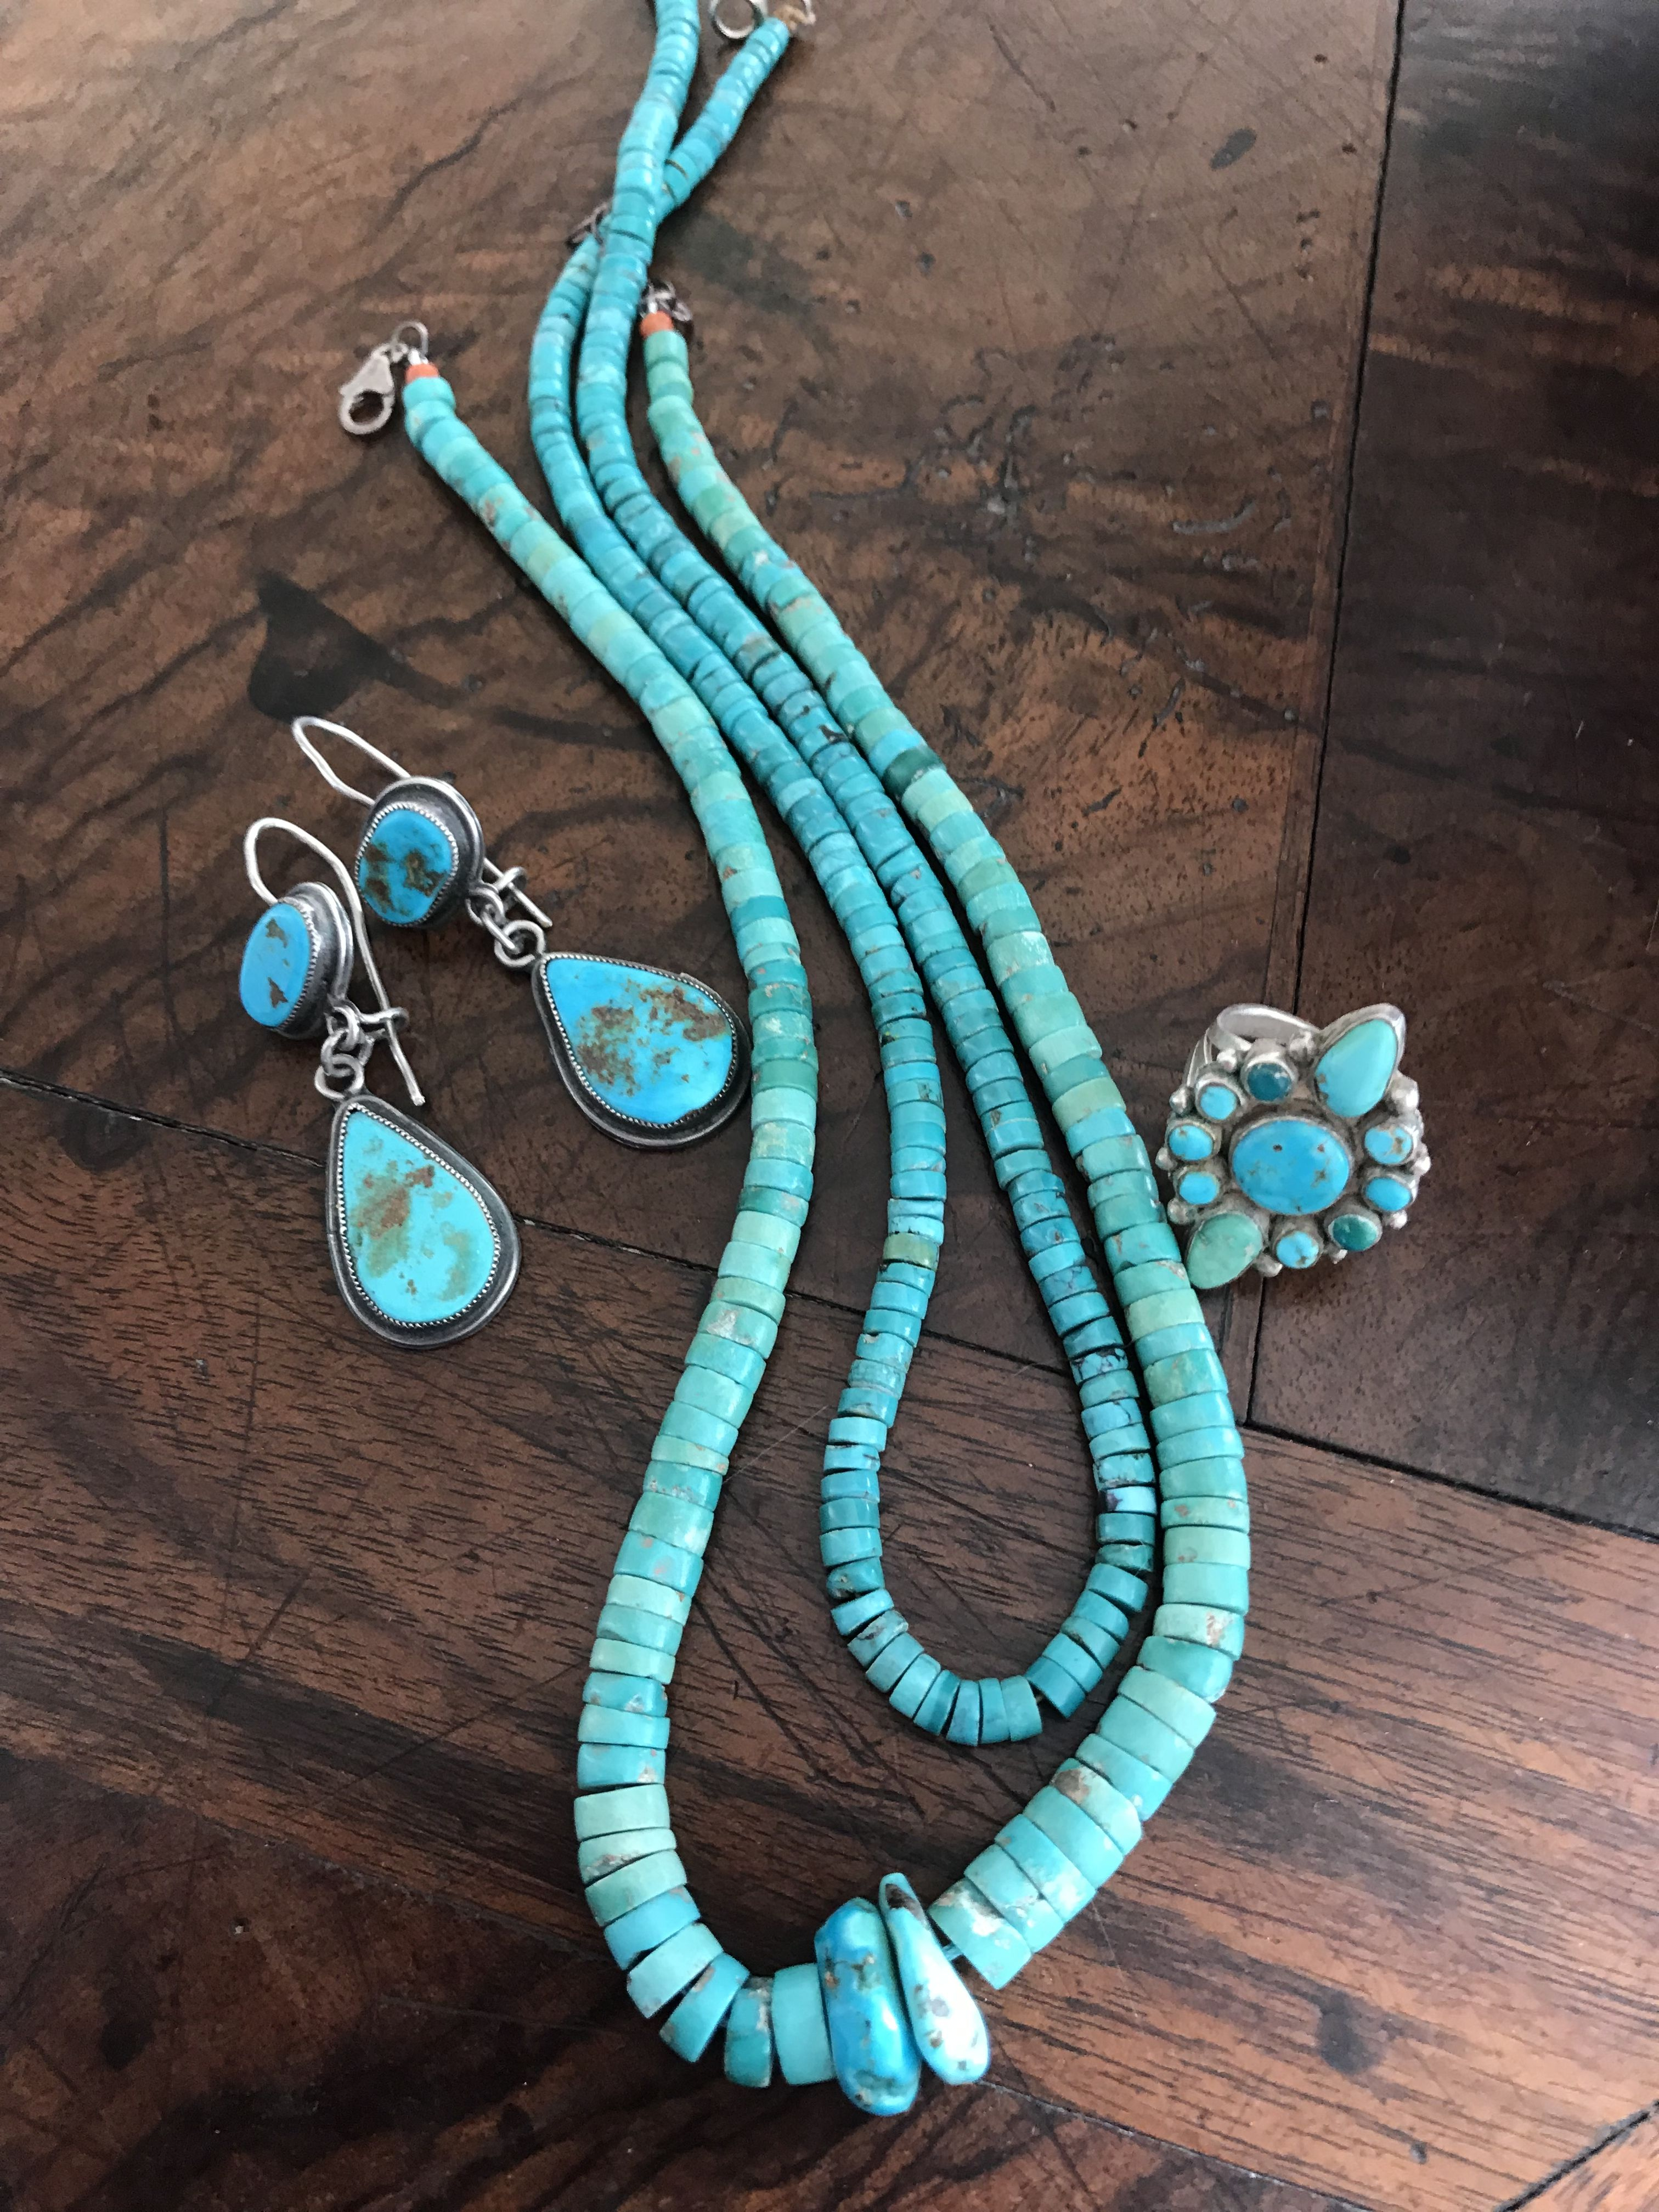 Turquoise earrings, ring and heishi necklace FOR SALE